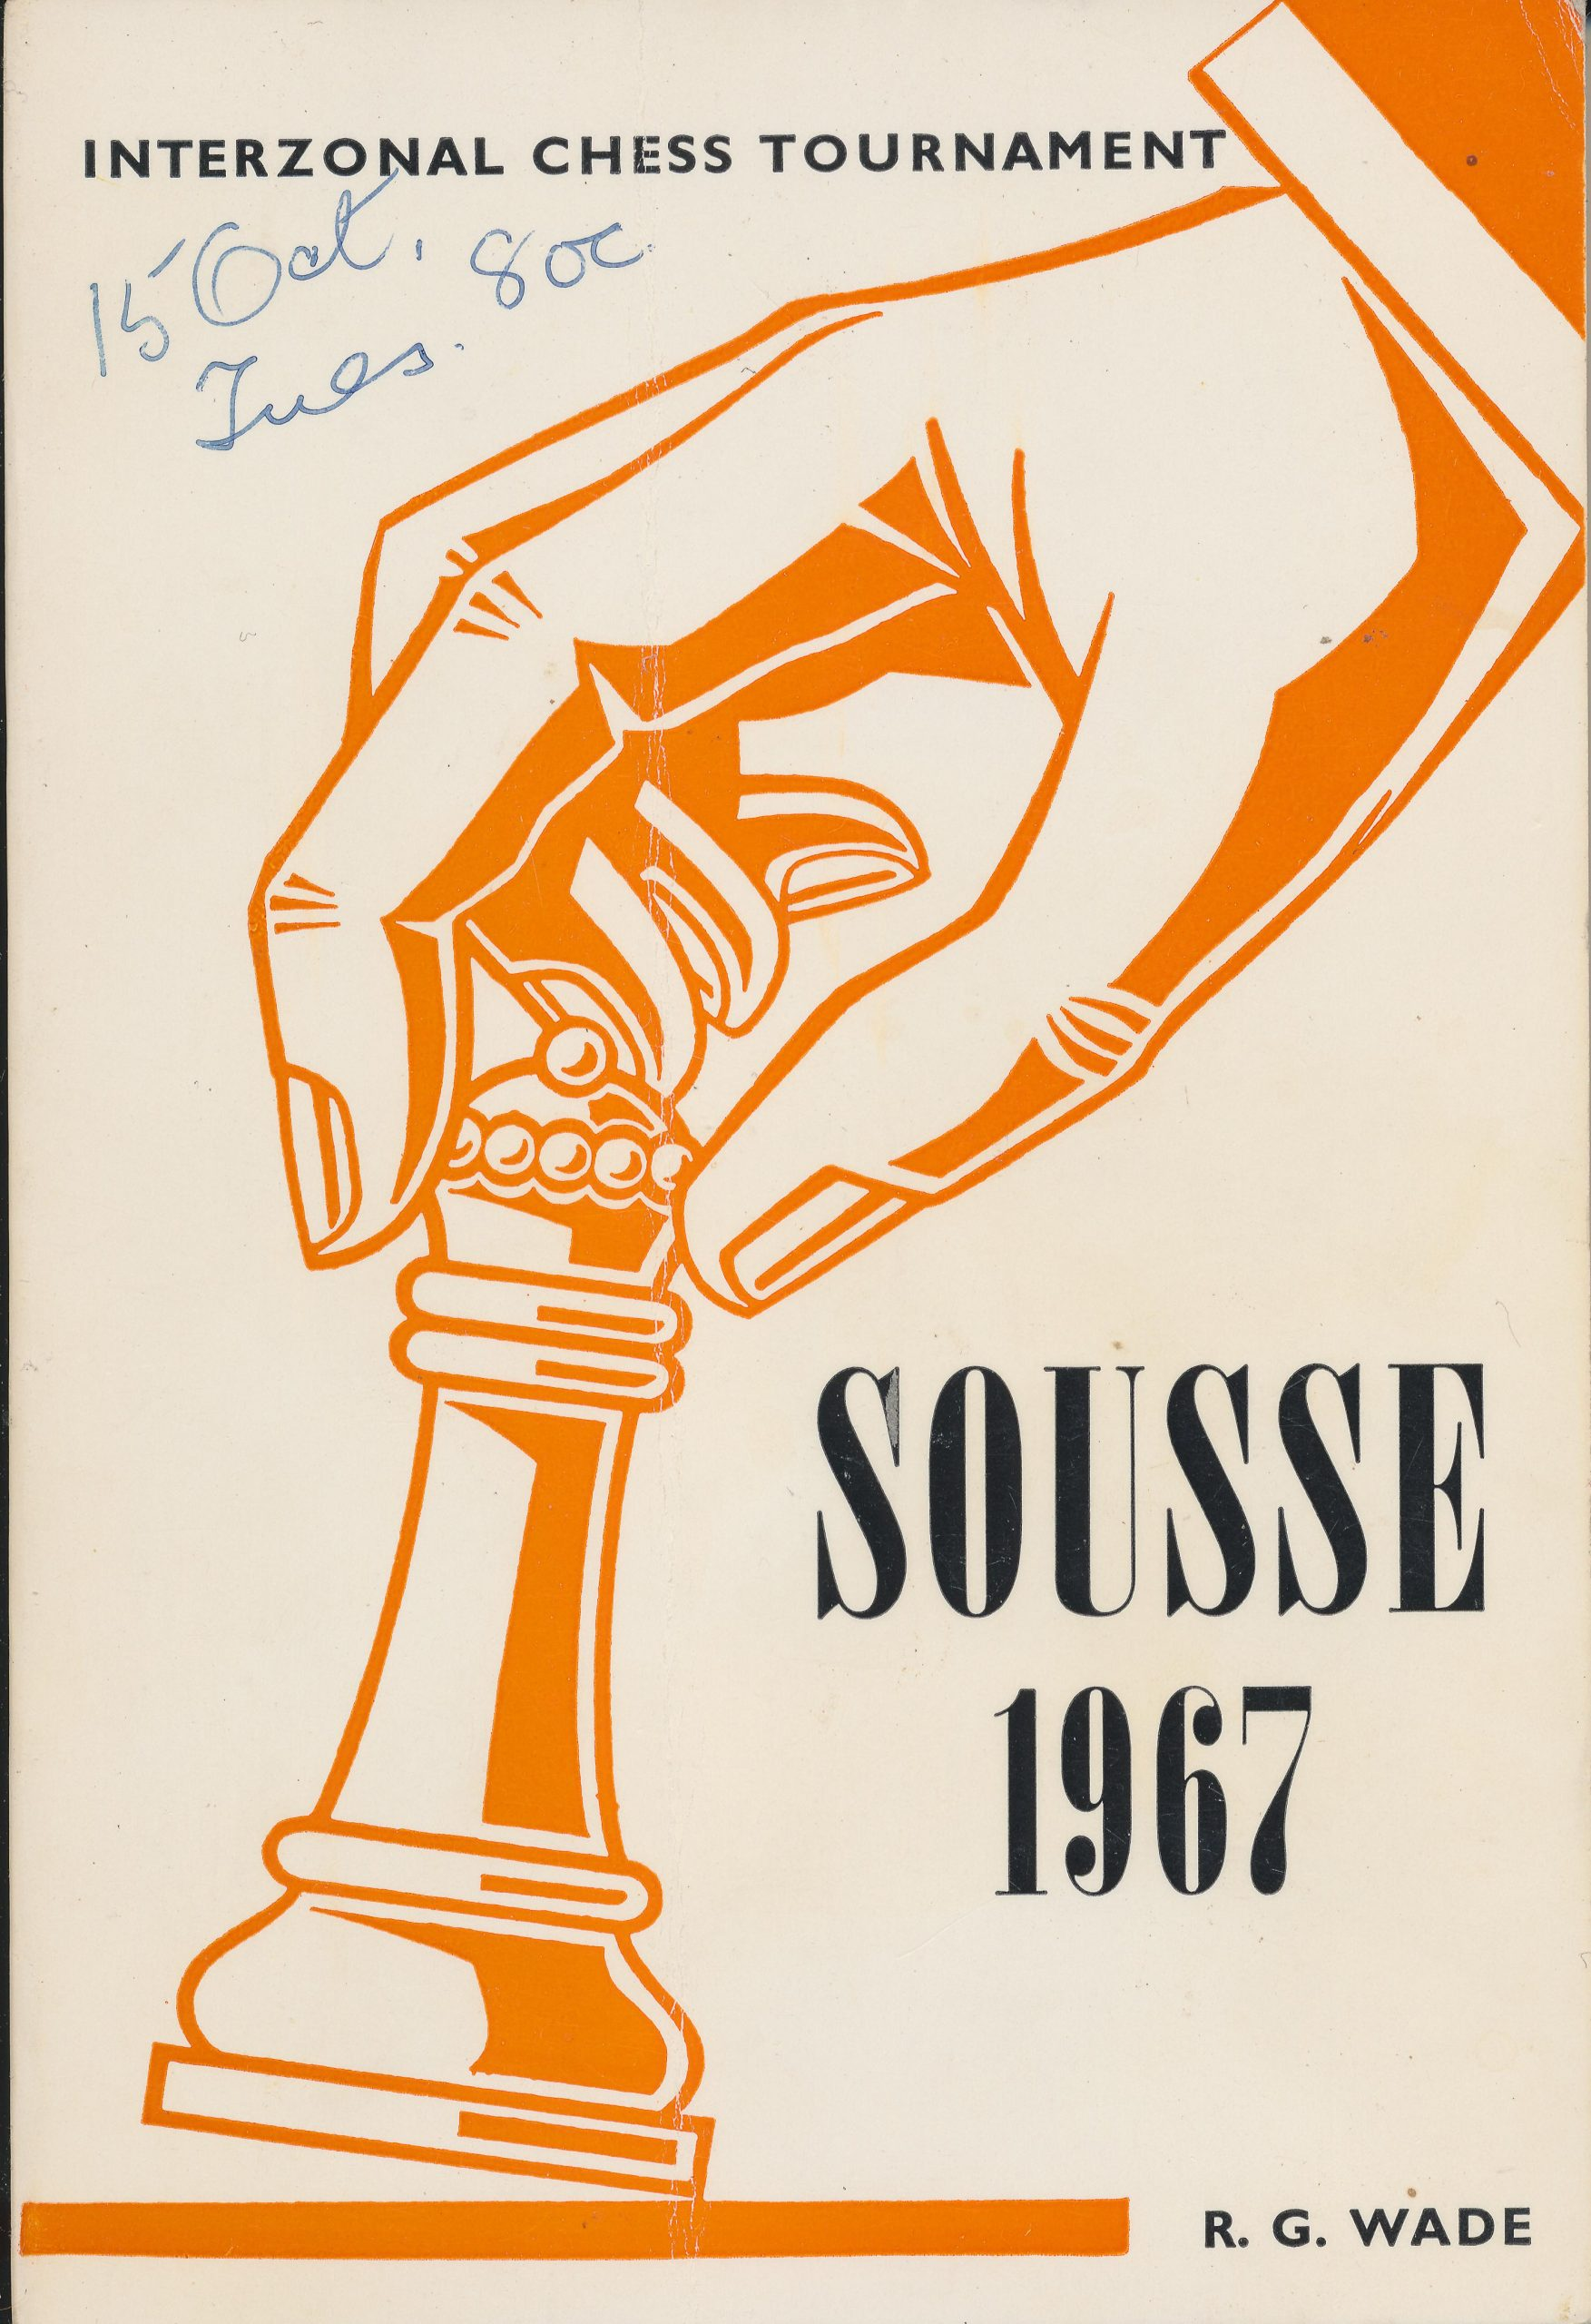 Sousse 1967 : International Chess Tournament, RG Wade, The Chess Player, 1968